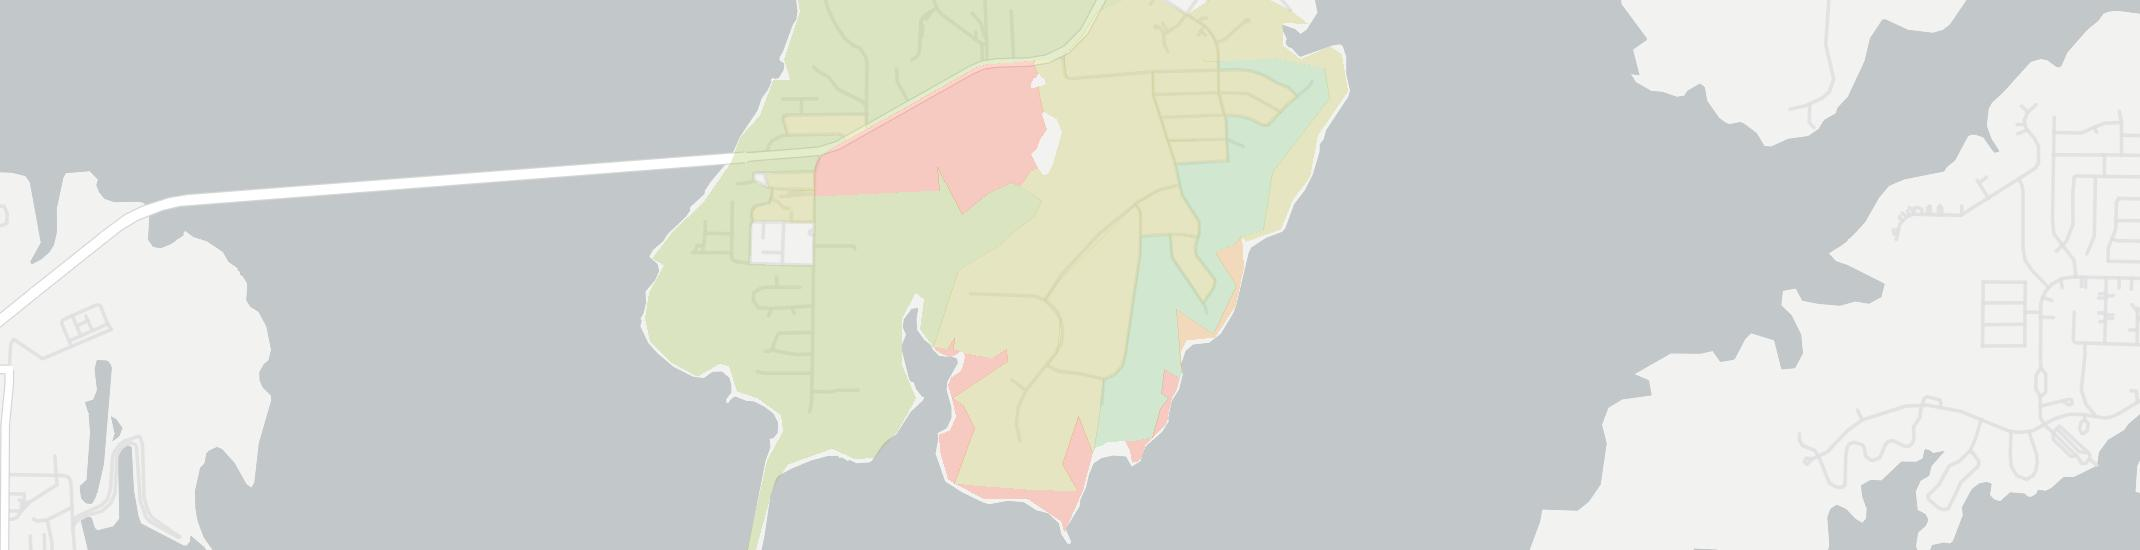 Lakewood Village Internet Competition Map. Click for interactive map.